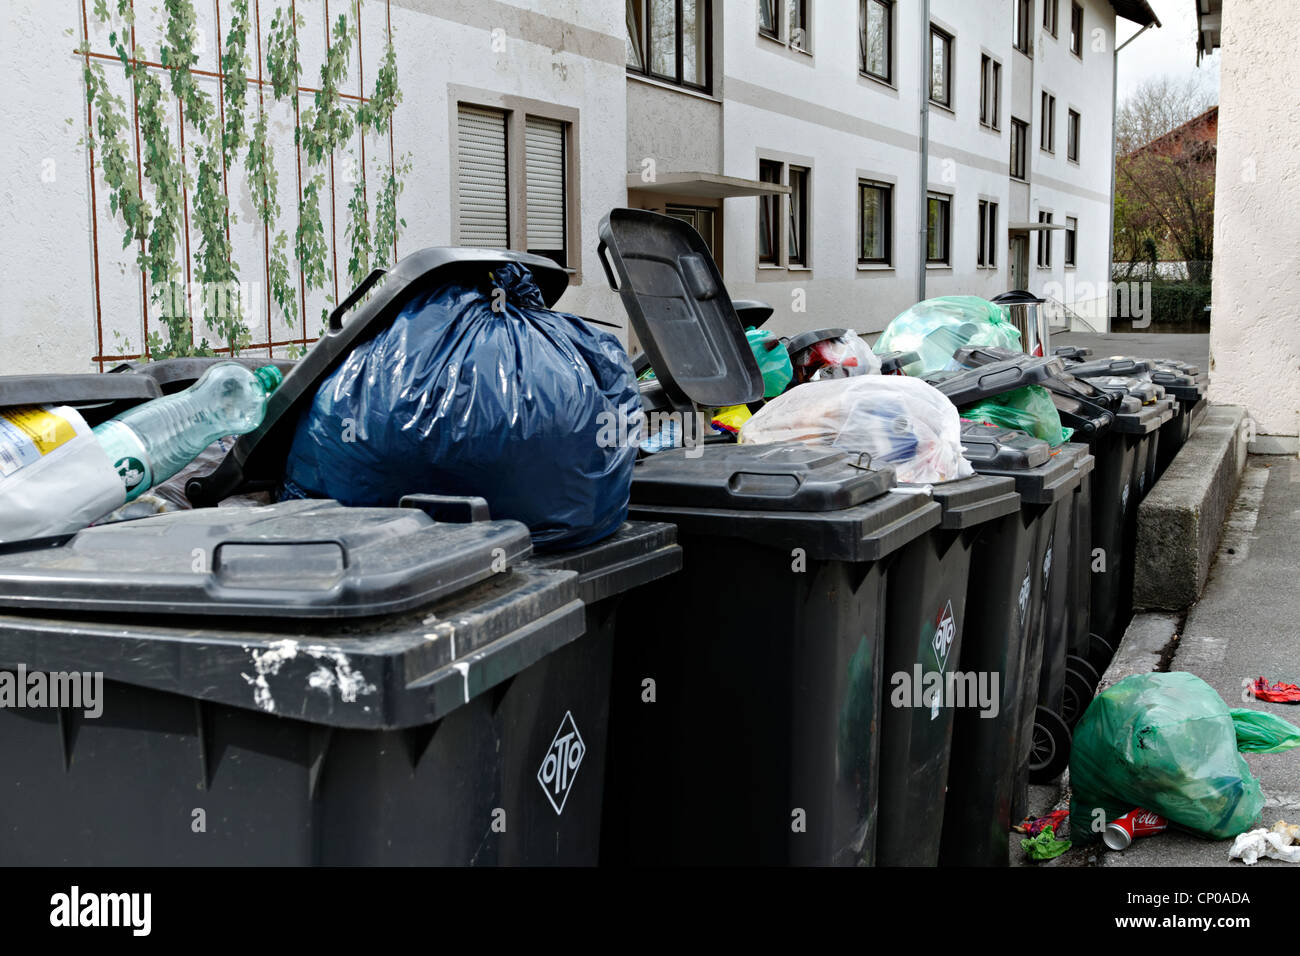 A line of rubbish bins outside a block of flats , Prien Chiemgau Upper Bavaria Germany - Stock Image